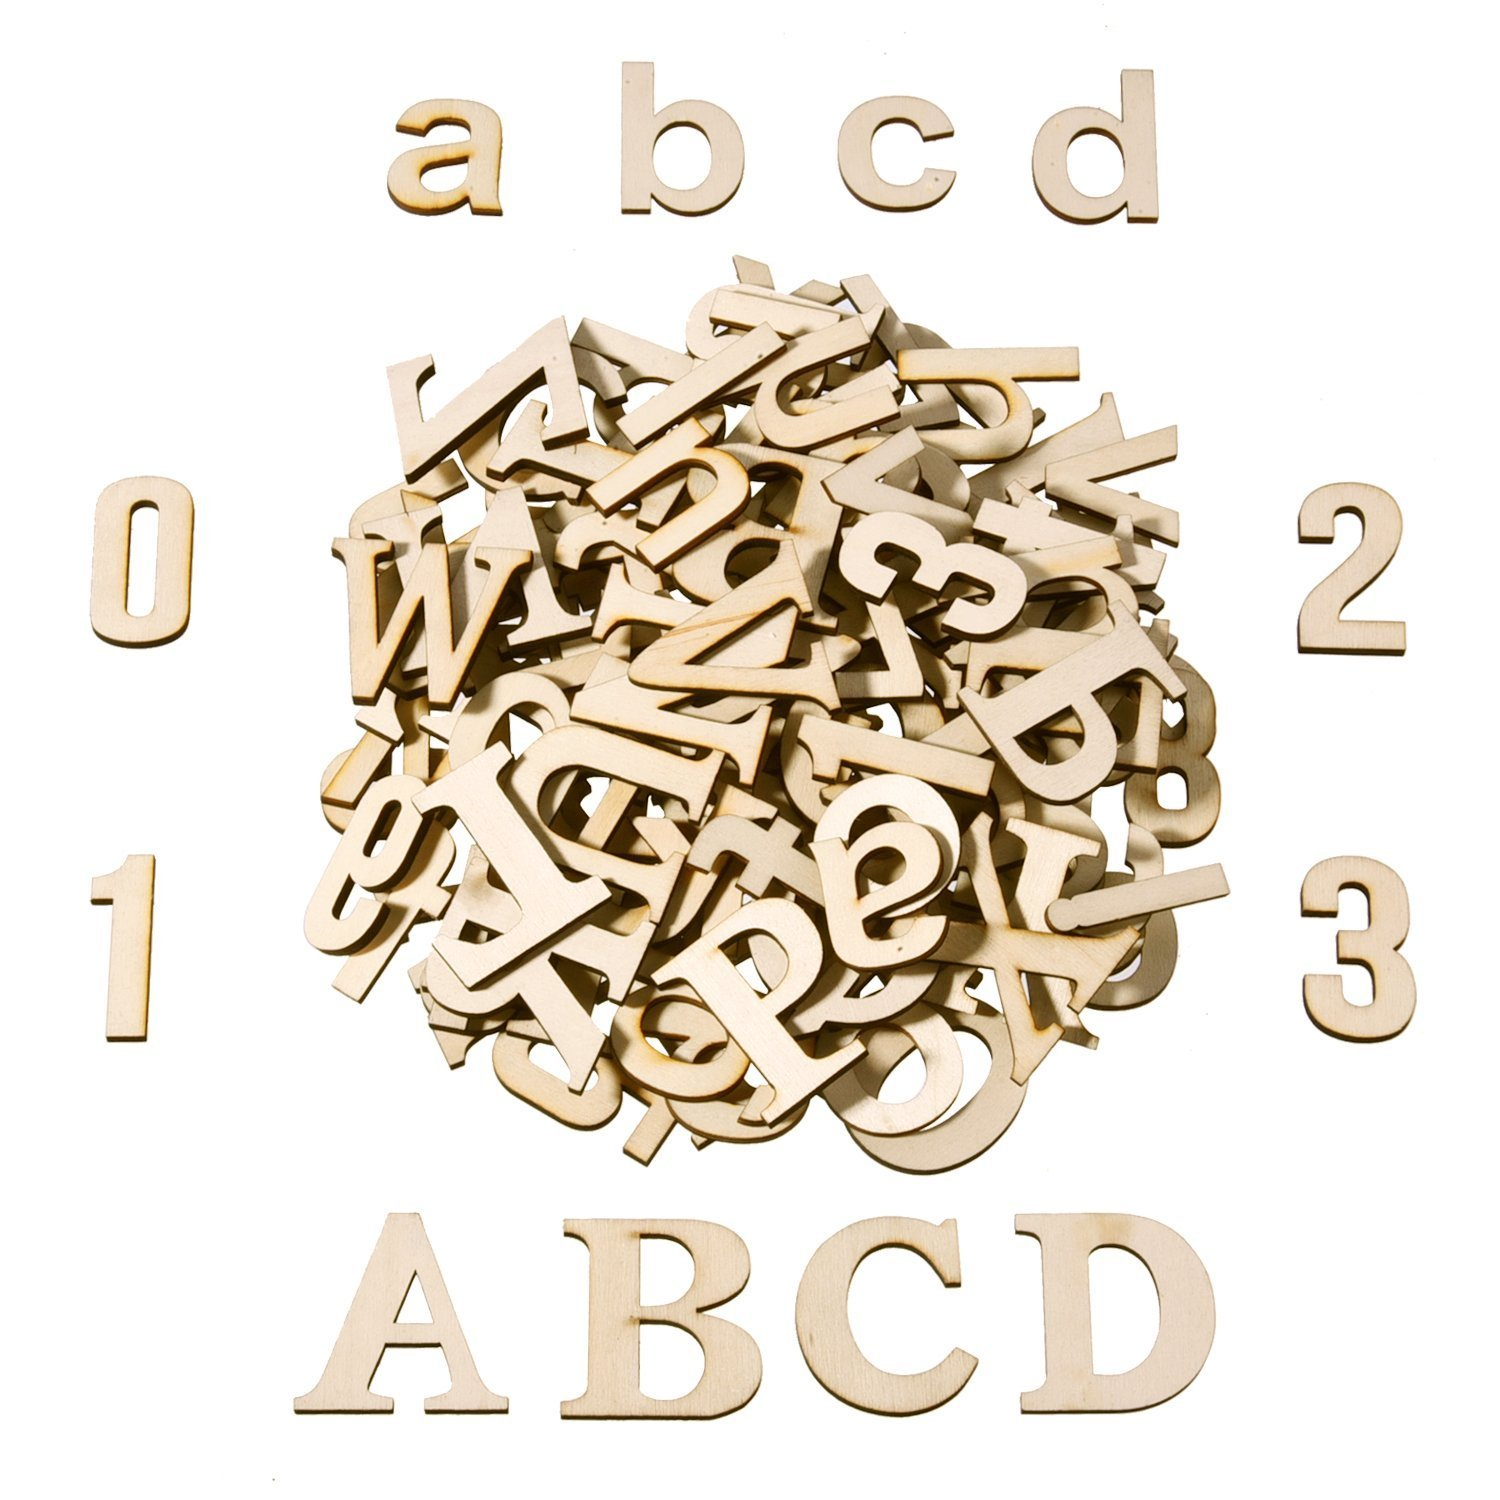 Satinior 124 Pieces Totally Wooden Capital Letter Wood Lower Case Letters Wooden Numbers for Arts Crafts DIY Decoration Displays